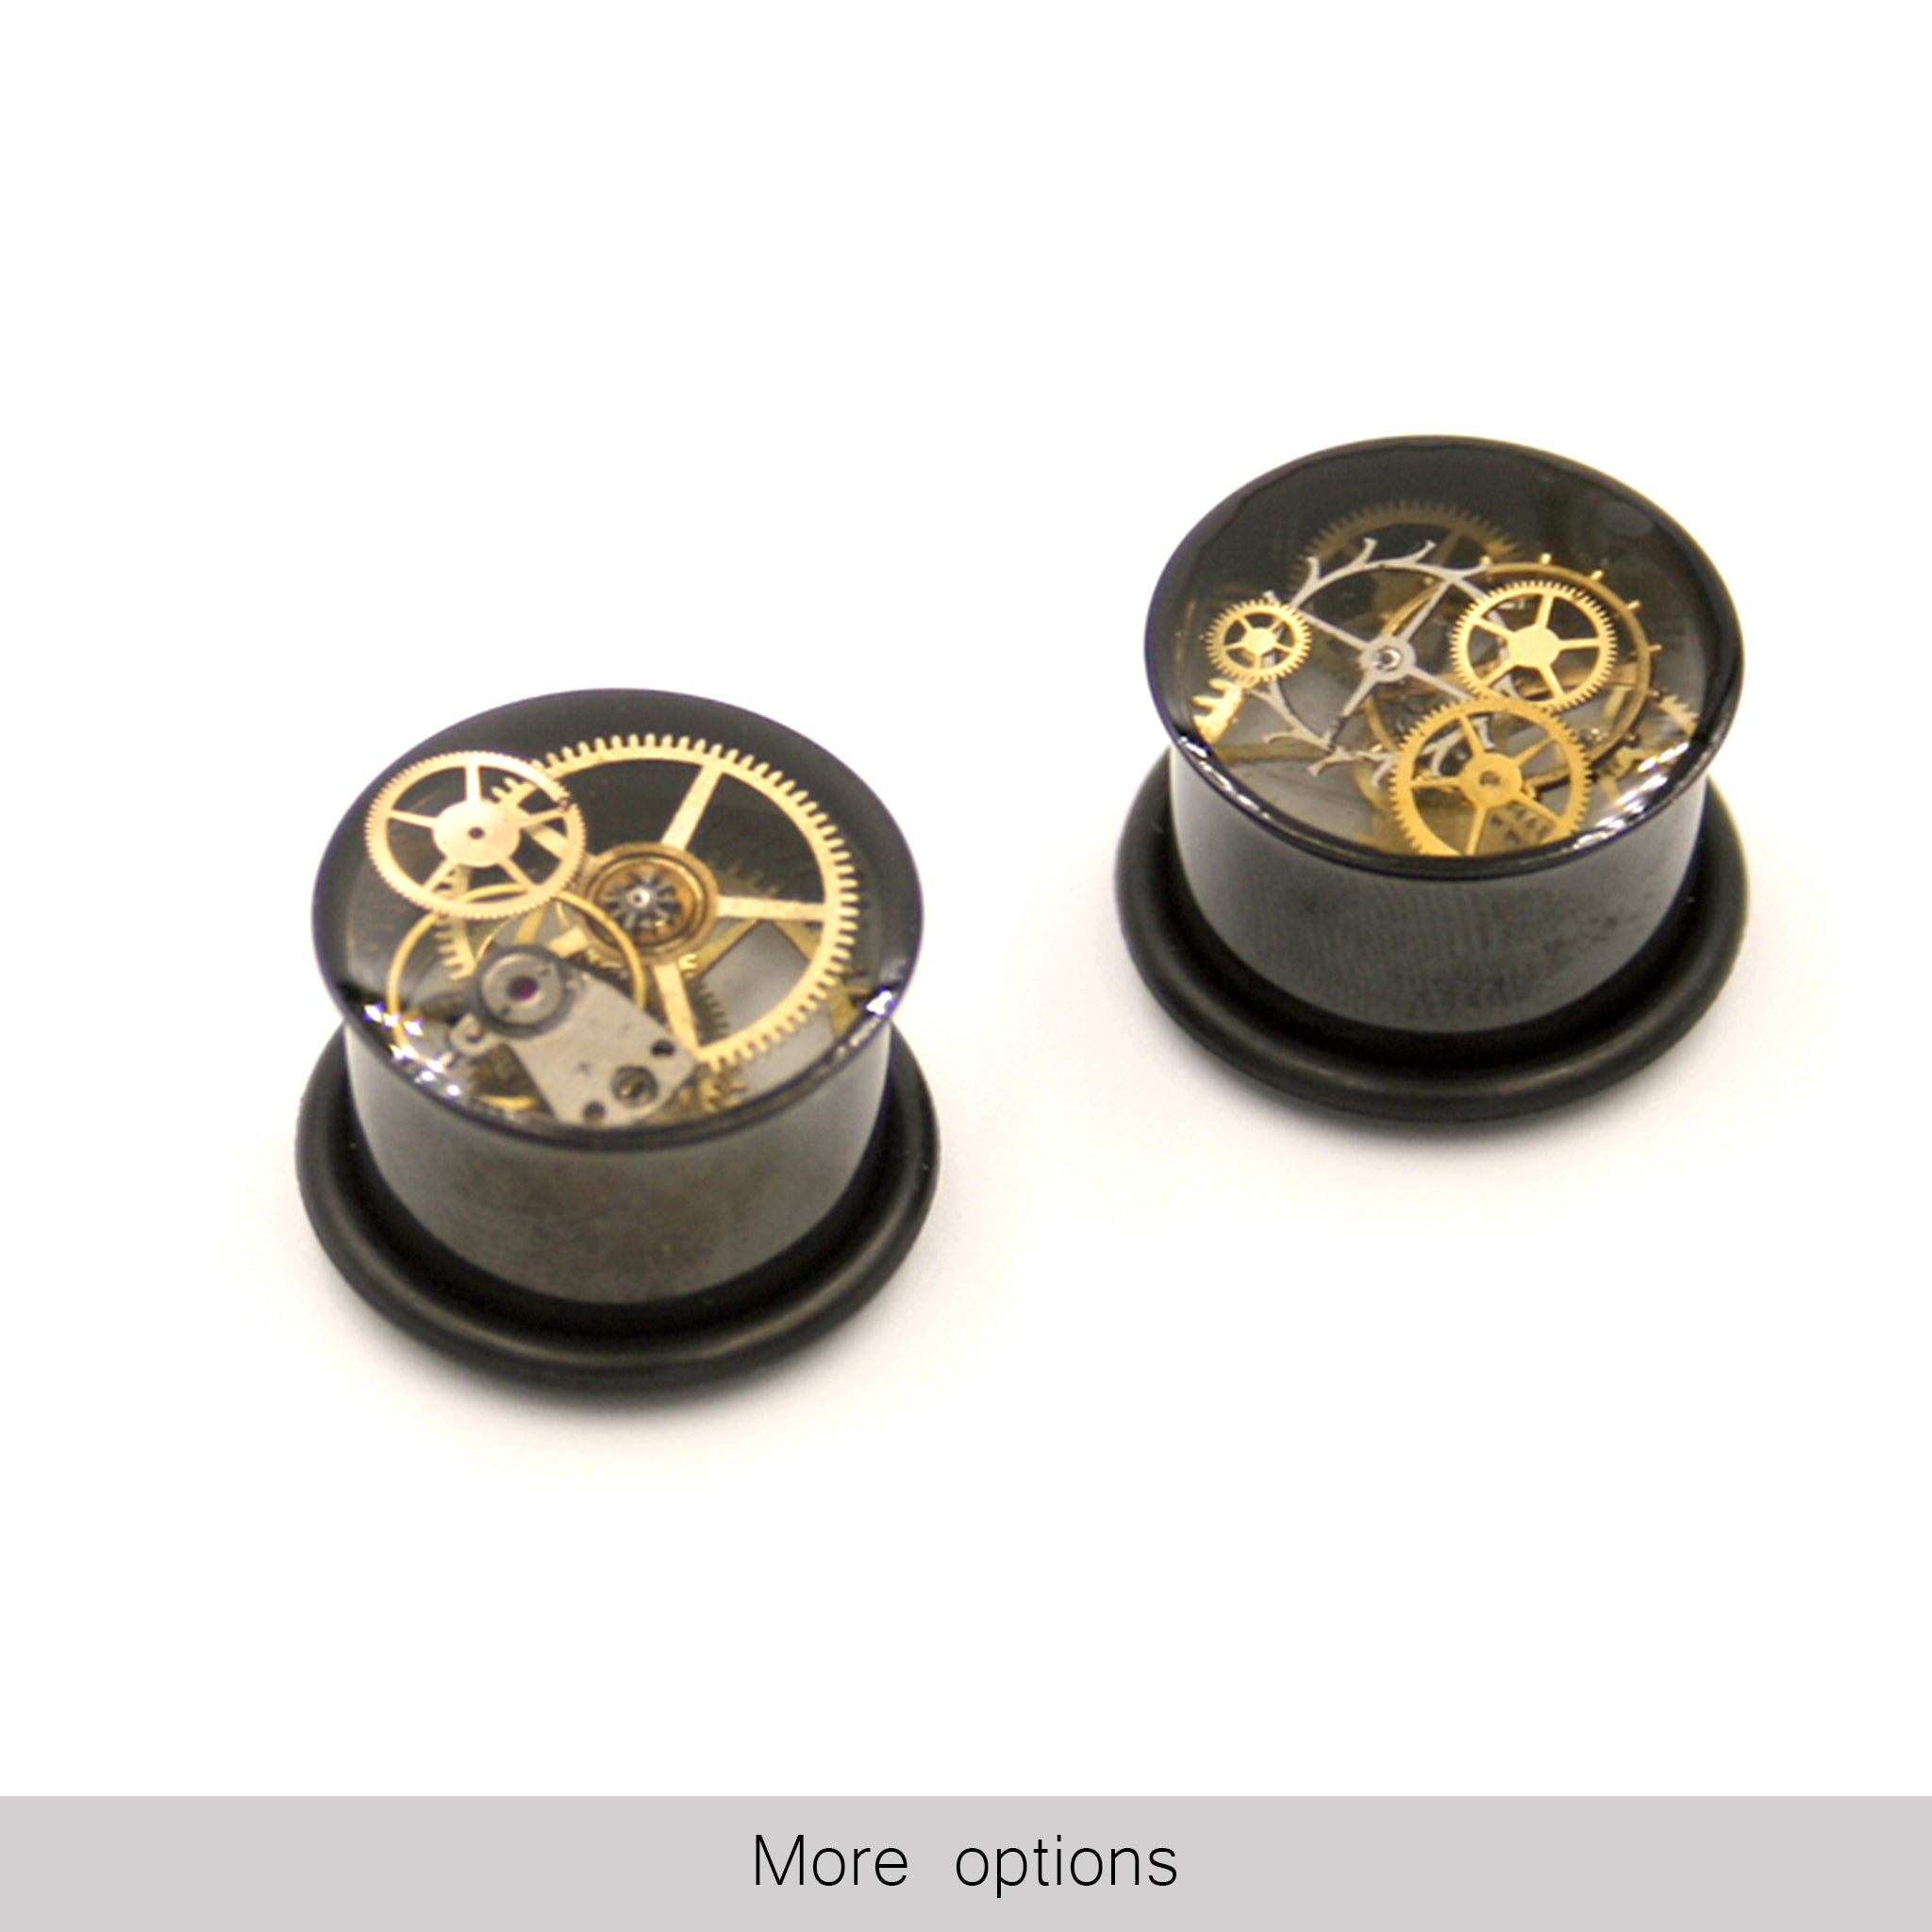 14mm o-ring black ear gauges in steampunk style